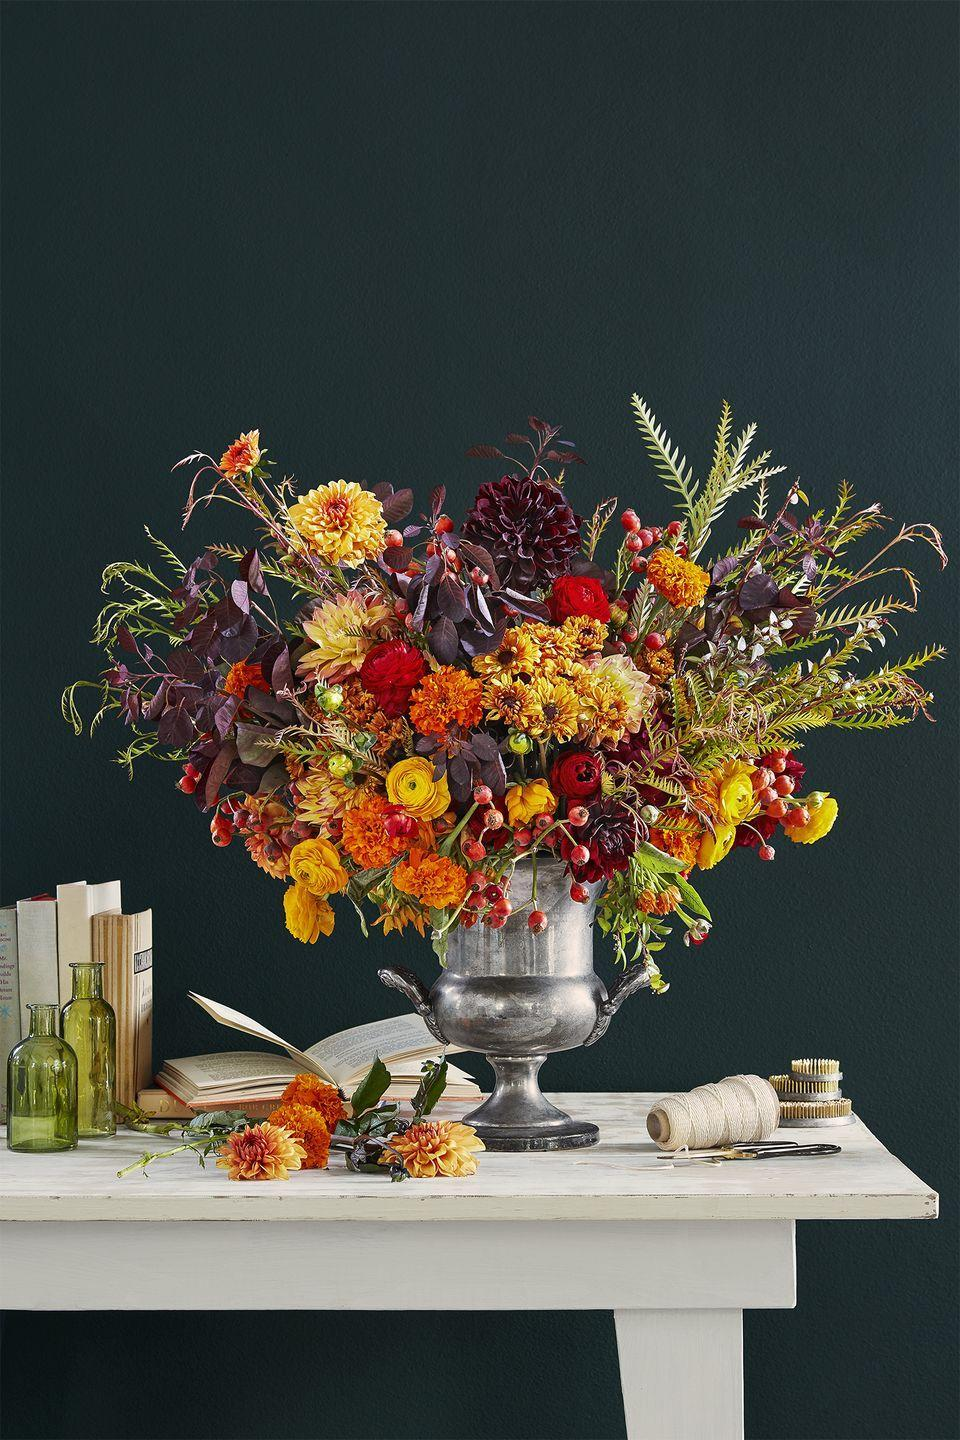 """<p>Bring some autumnal beauty indoors with this arrangement inspired by the yellow, orange, red, and purple leaves on the trees. A vintage trophy (with a <a href=""""https://www.amazon.com/JapanBargain-Japanese-Ikebana-Kenzan-Flower/dp/B0149HTLAO/?tag=syn-yahoo-20&ascsubtag=%5Bartid%7C10050.g.2130%5Bsrc%7Cyahoo-us"""" rel=""""nofollow noopener"""" target=""""_blank"""" data-ylk=""""slk:flower frog"""" class=""""link rapid-noclick-resp"""">flower frog</a> inside) makes the perfect vessel for a big bunch of blooms.</p><p><a class=""""link rapid-noclick-resp"""" href=""""https://go.redirectingat.com?id=74968X1596630&url=https%3A%2F%2Fwww.ebay.com%2Fsch%2Fi.html%3F_from%3DR40%26_trksid%3Dp2334524.m570.l1313.TR11.TRC2.A0.H0.Xvintage%2BTROPHIES.TRS1%26_nkw%3Dvintage%2BTROPHIES%26_sacat%3D0%26LH_TitleDesc%3D0%26LH_TitleDesc%3D0%26_osacat%3D0%26_odkw%3Dvintage%2Bjug%2Bcoolers&sref=https%3A%2F%2Fwww.countryliving.com%2Fentertaining%2Fg2130%2Fthanksgiving-centerpieces%2F"""" rel=""""nofollow noopener"""" target=""""_blank"""" data-ylk=""""slk:SHOP VINTAGE TROPHIES"""">SHOP VINTAGE TROPHIES</a></p>"""